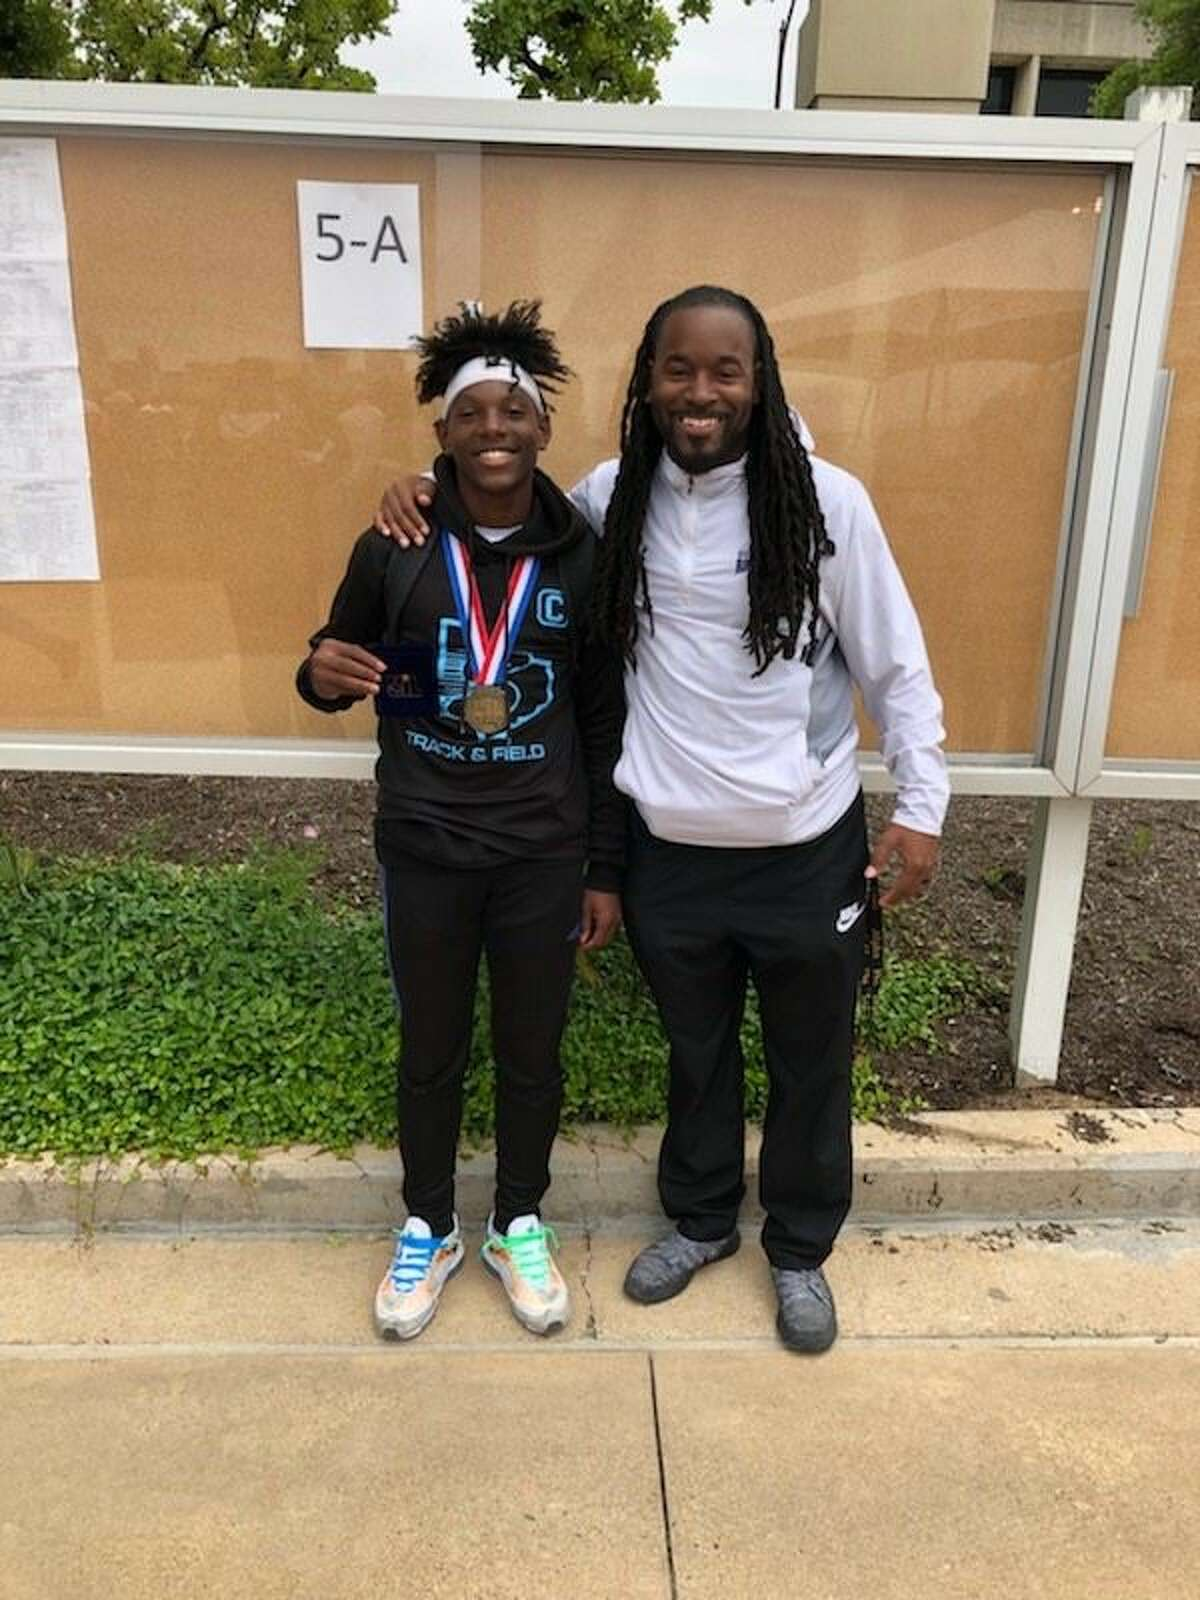 Sterling's Trey Thomas (left) shares a moment with coach Dexter Addison after winning bronze in the Class 5A boys long jump at the UIL state track and field championships at Mike A. Myers Stadium at the University of Texas in Austin.